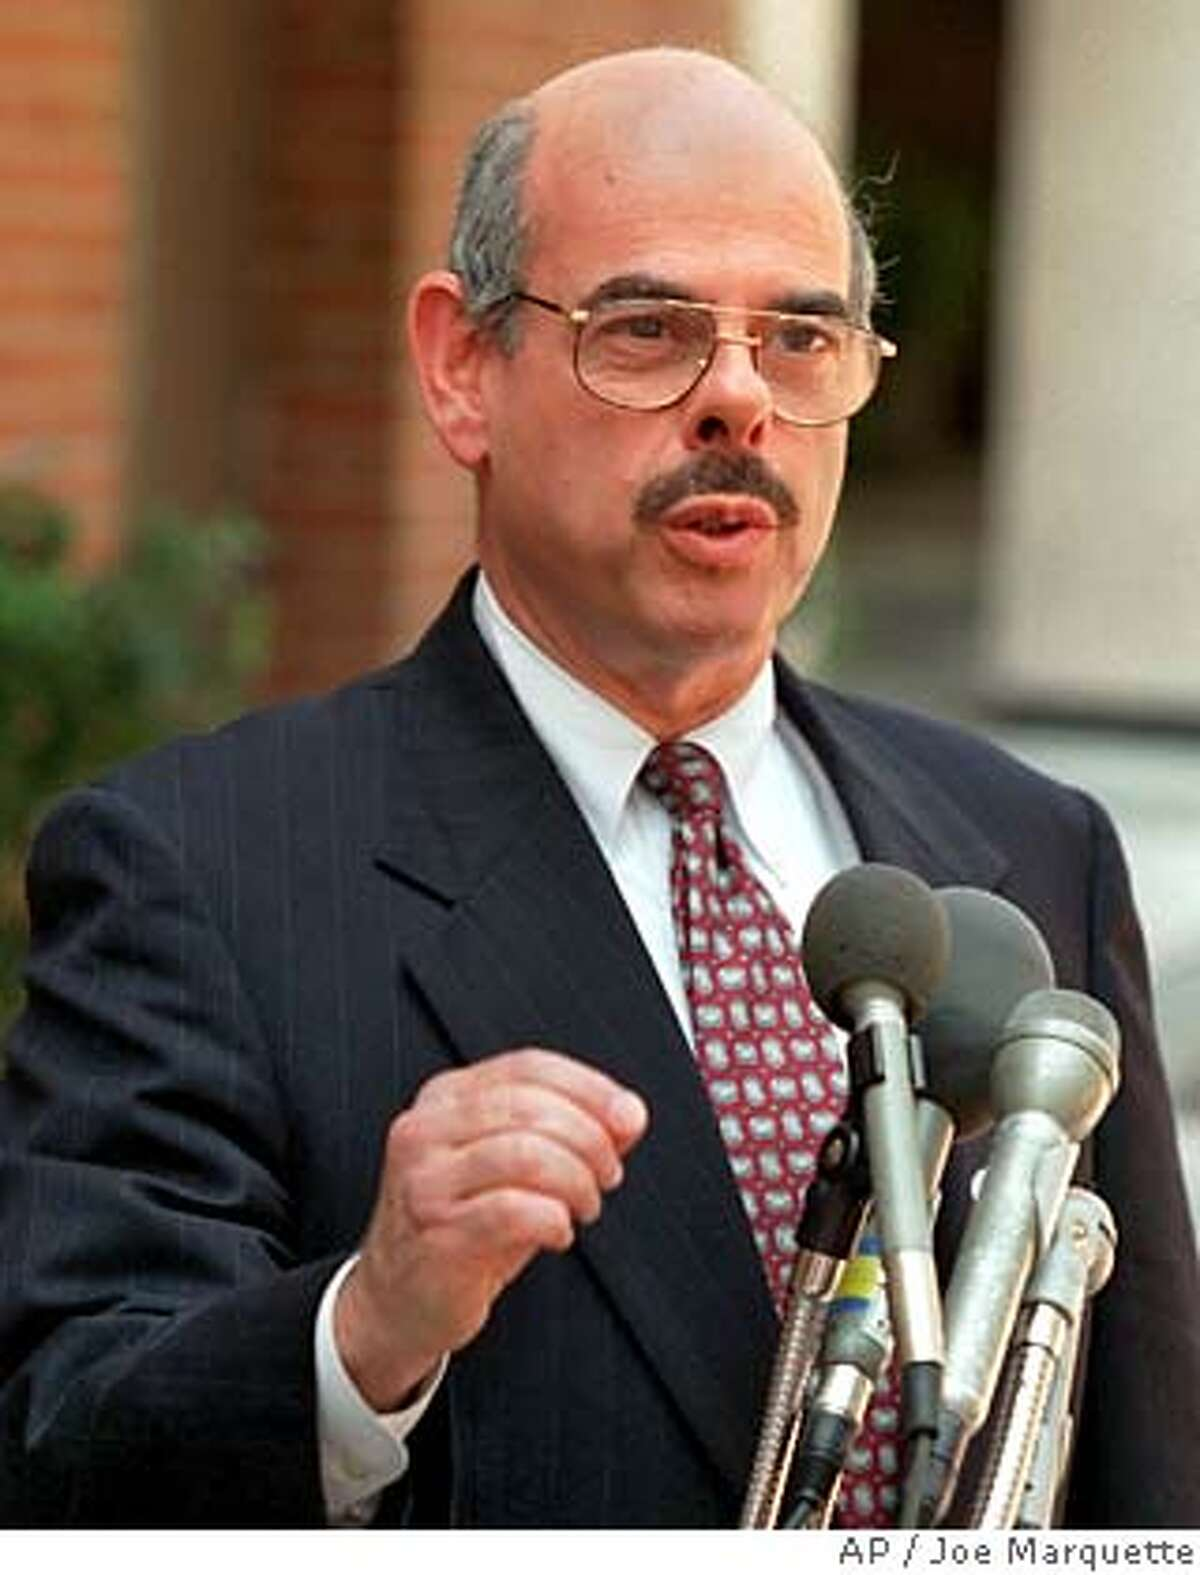 """Rep. Henry Waxman, D-Calif. speaks outside CBS television studios in Washington, Sunday, July 30, 1995 following his appearance on CBS' """"Face the Nation.""""(AP Photo/Joe Marquette) He wants mandatory rules on tobacco access for minors. ALSO RAN: 3/11/97, 4/25/97, 5/14/02, 7/18/02 CAT Ran on: 08-18-2004 Rep. Henry Waxman says the Pentagon is giving Vice President Dick Cheneys former firm special breaks. Ran on: 02-25-2005 Thomas Davis Ran on: 02-25-2005 Thomas Davis ##Chronicle##ALL###"""